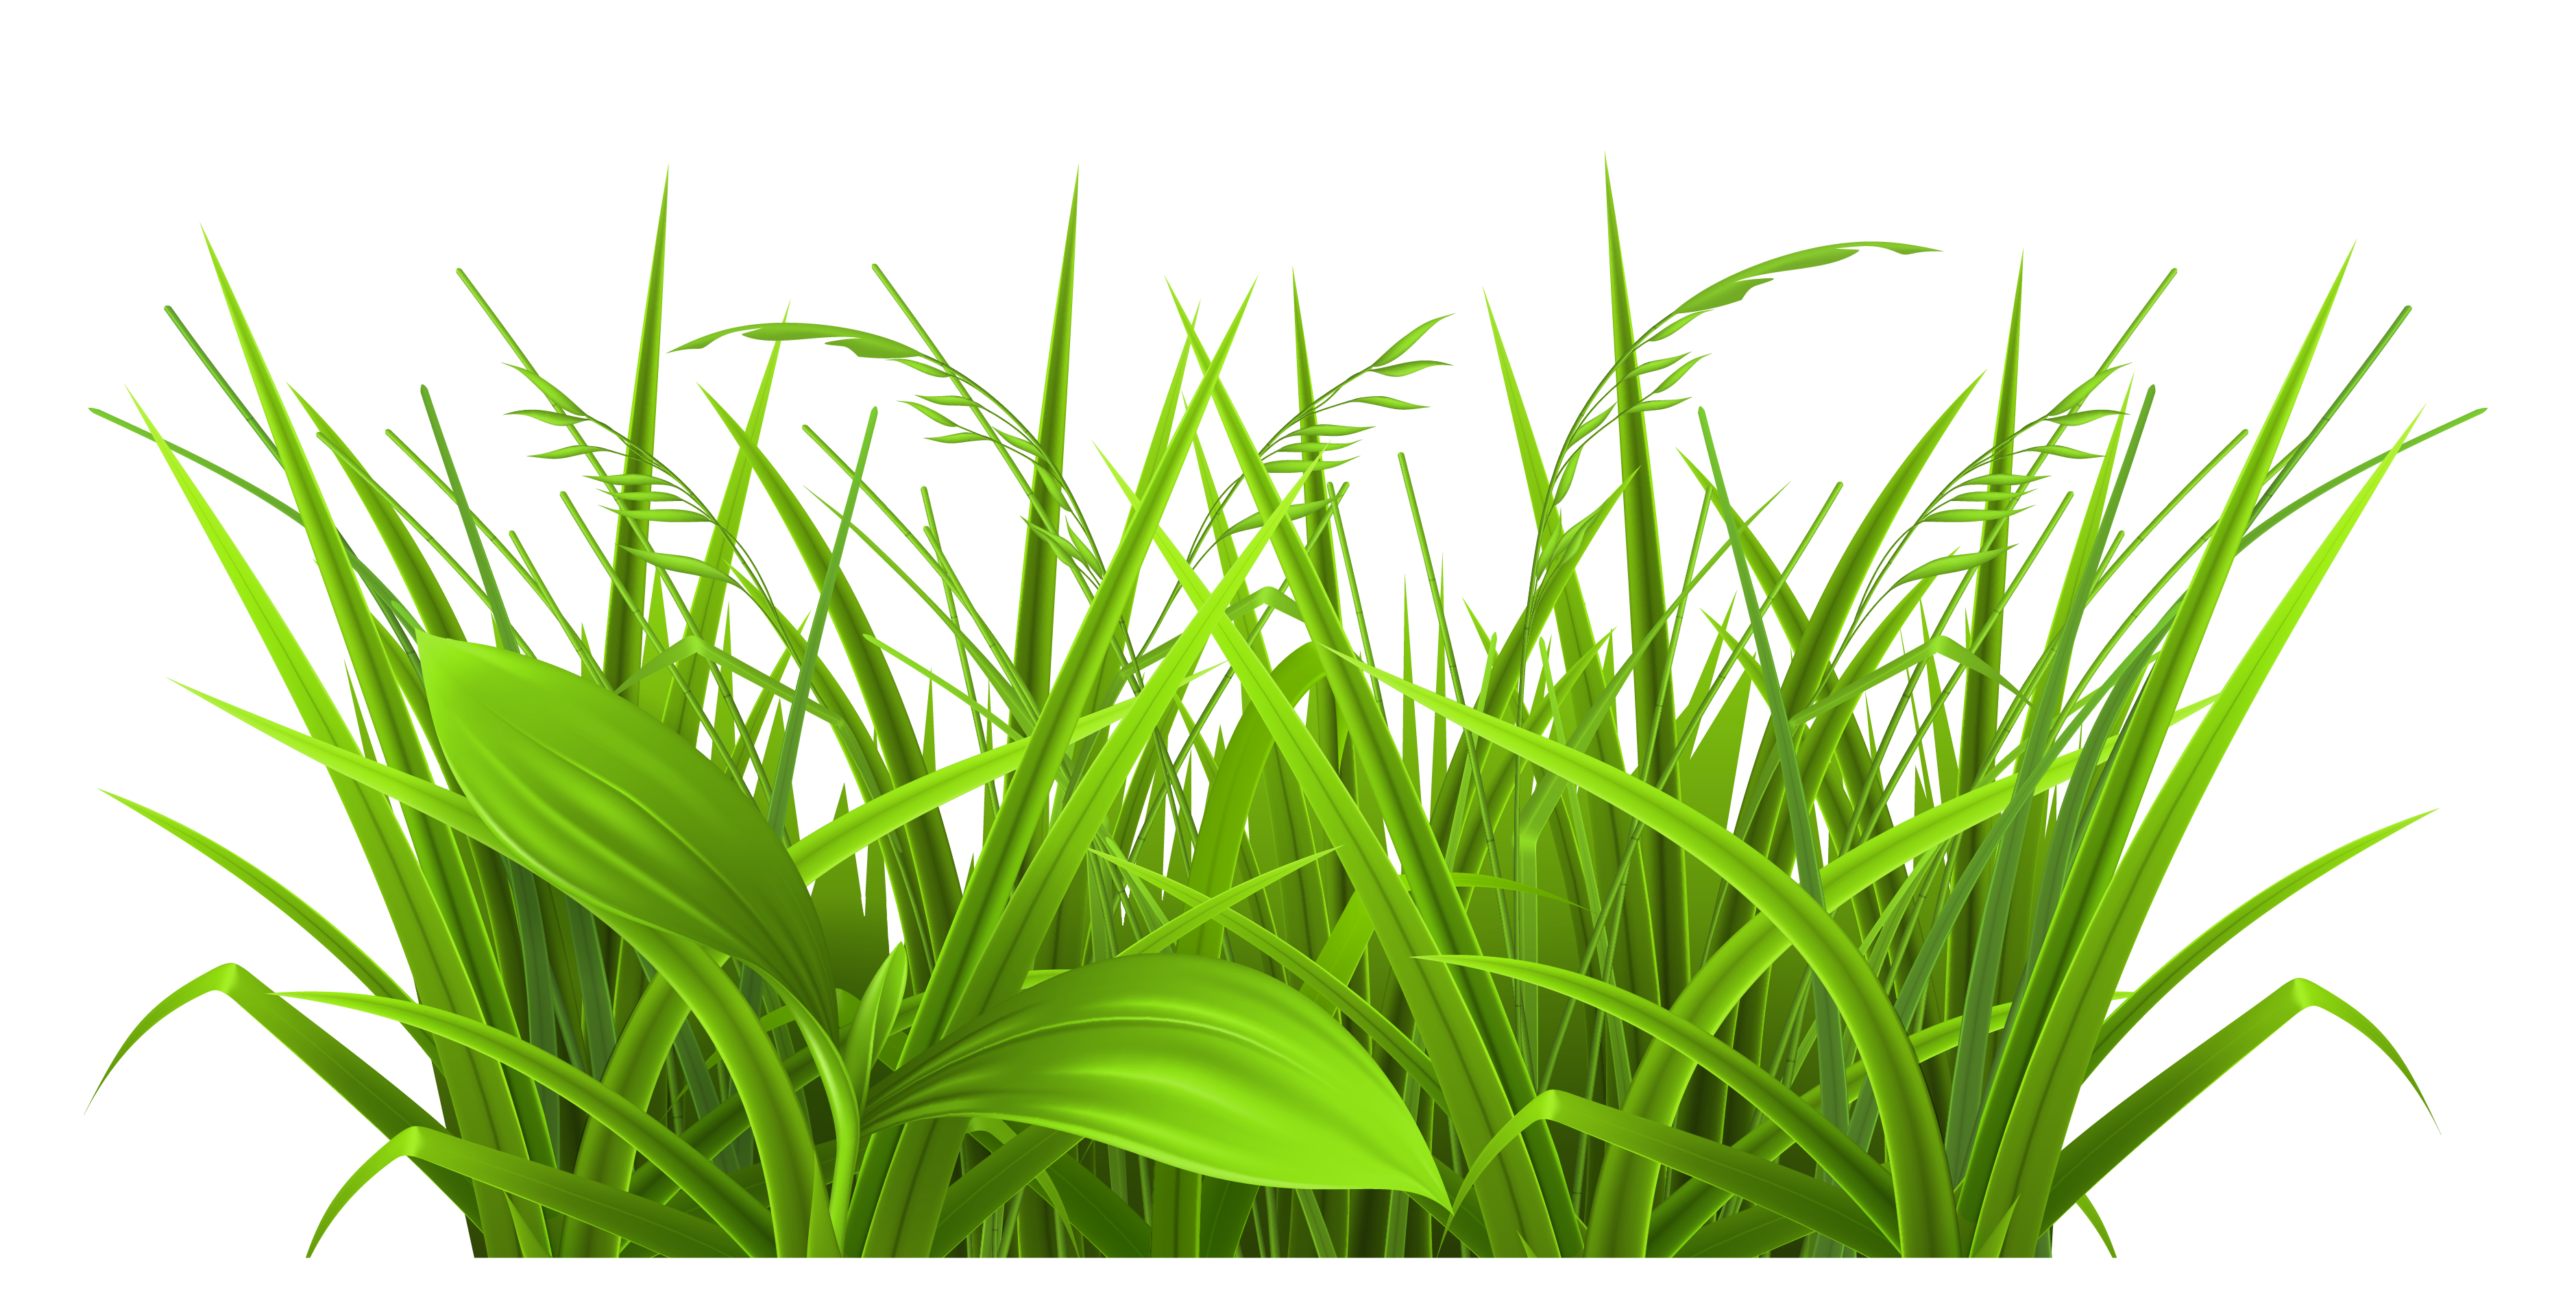 Grass Clipart And Green Grass .